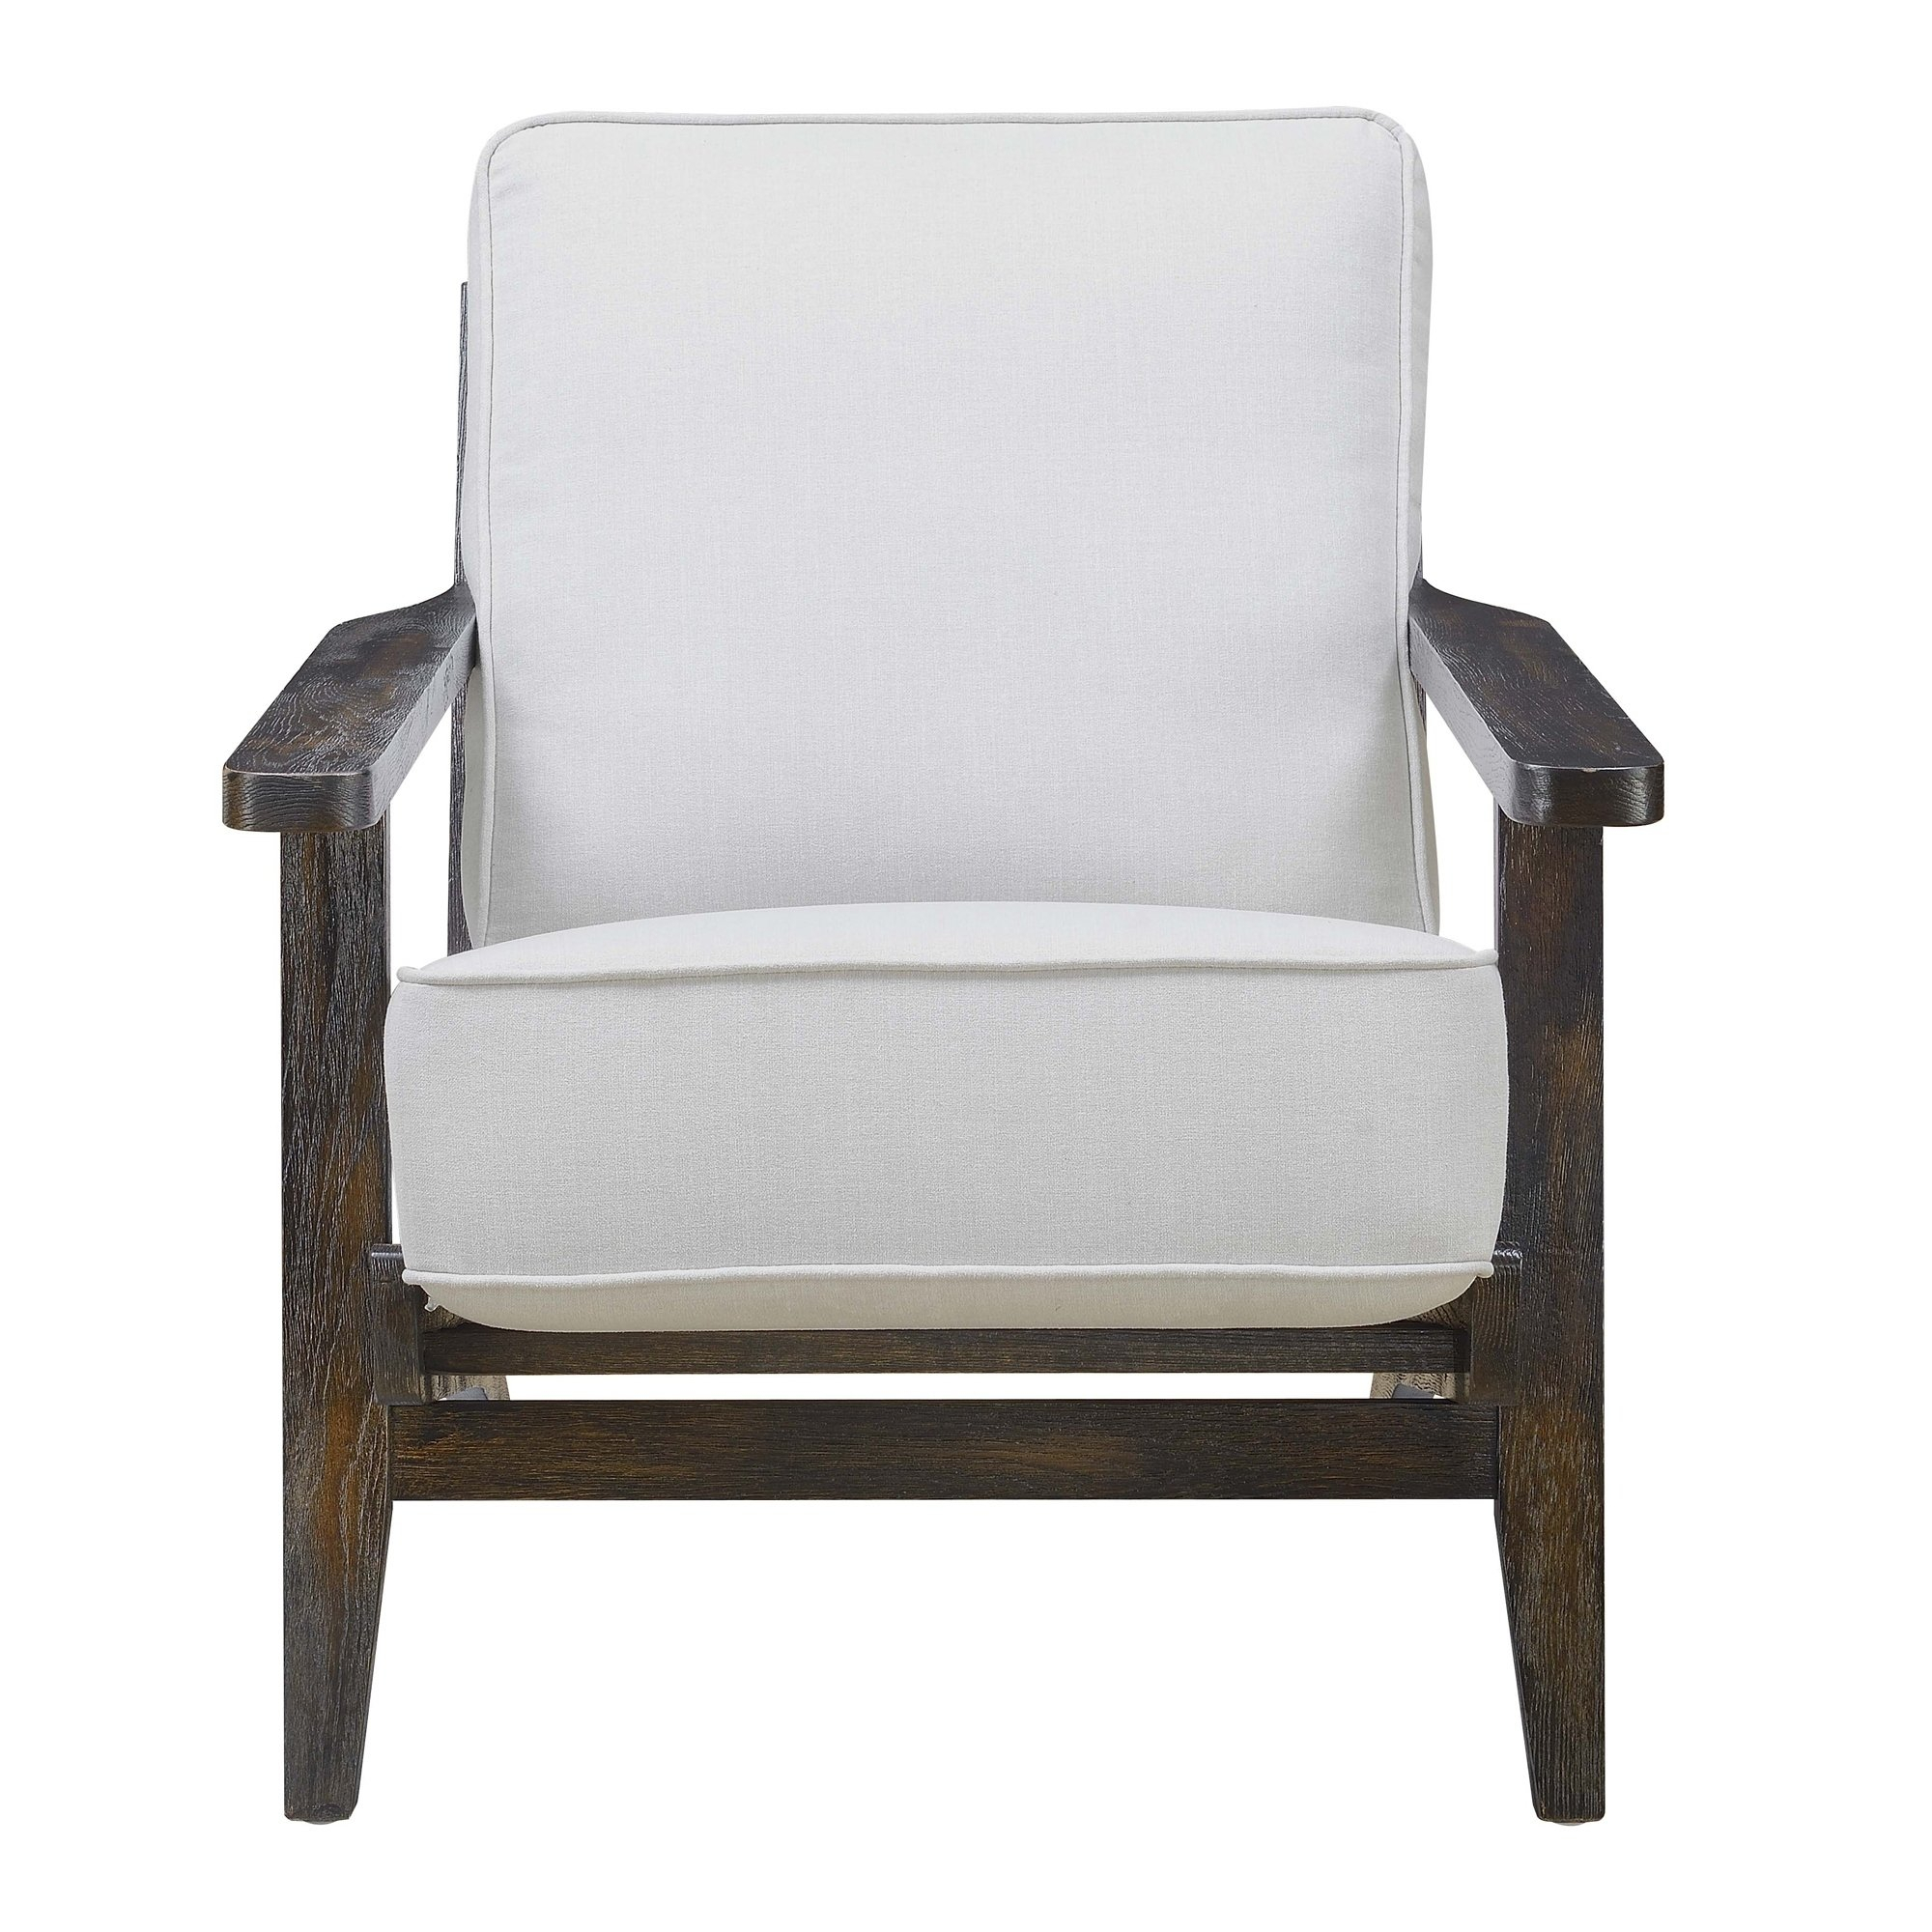 Picket House Furnishings Mercer Accent Chair In Onyx W/ Espresso For Mercer Foam Swivel Chairs (View 10 of 20)